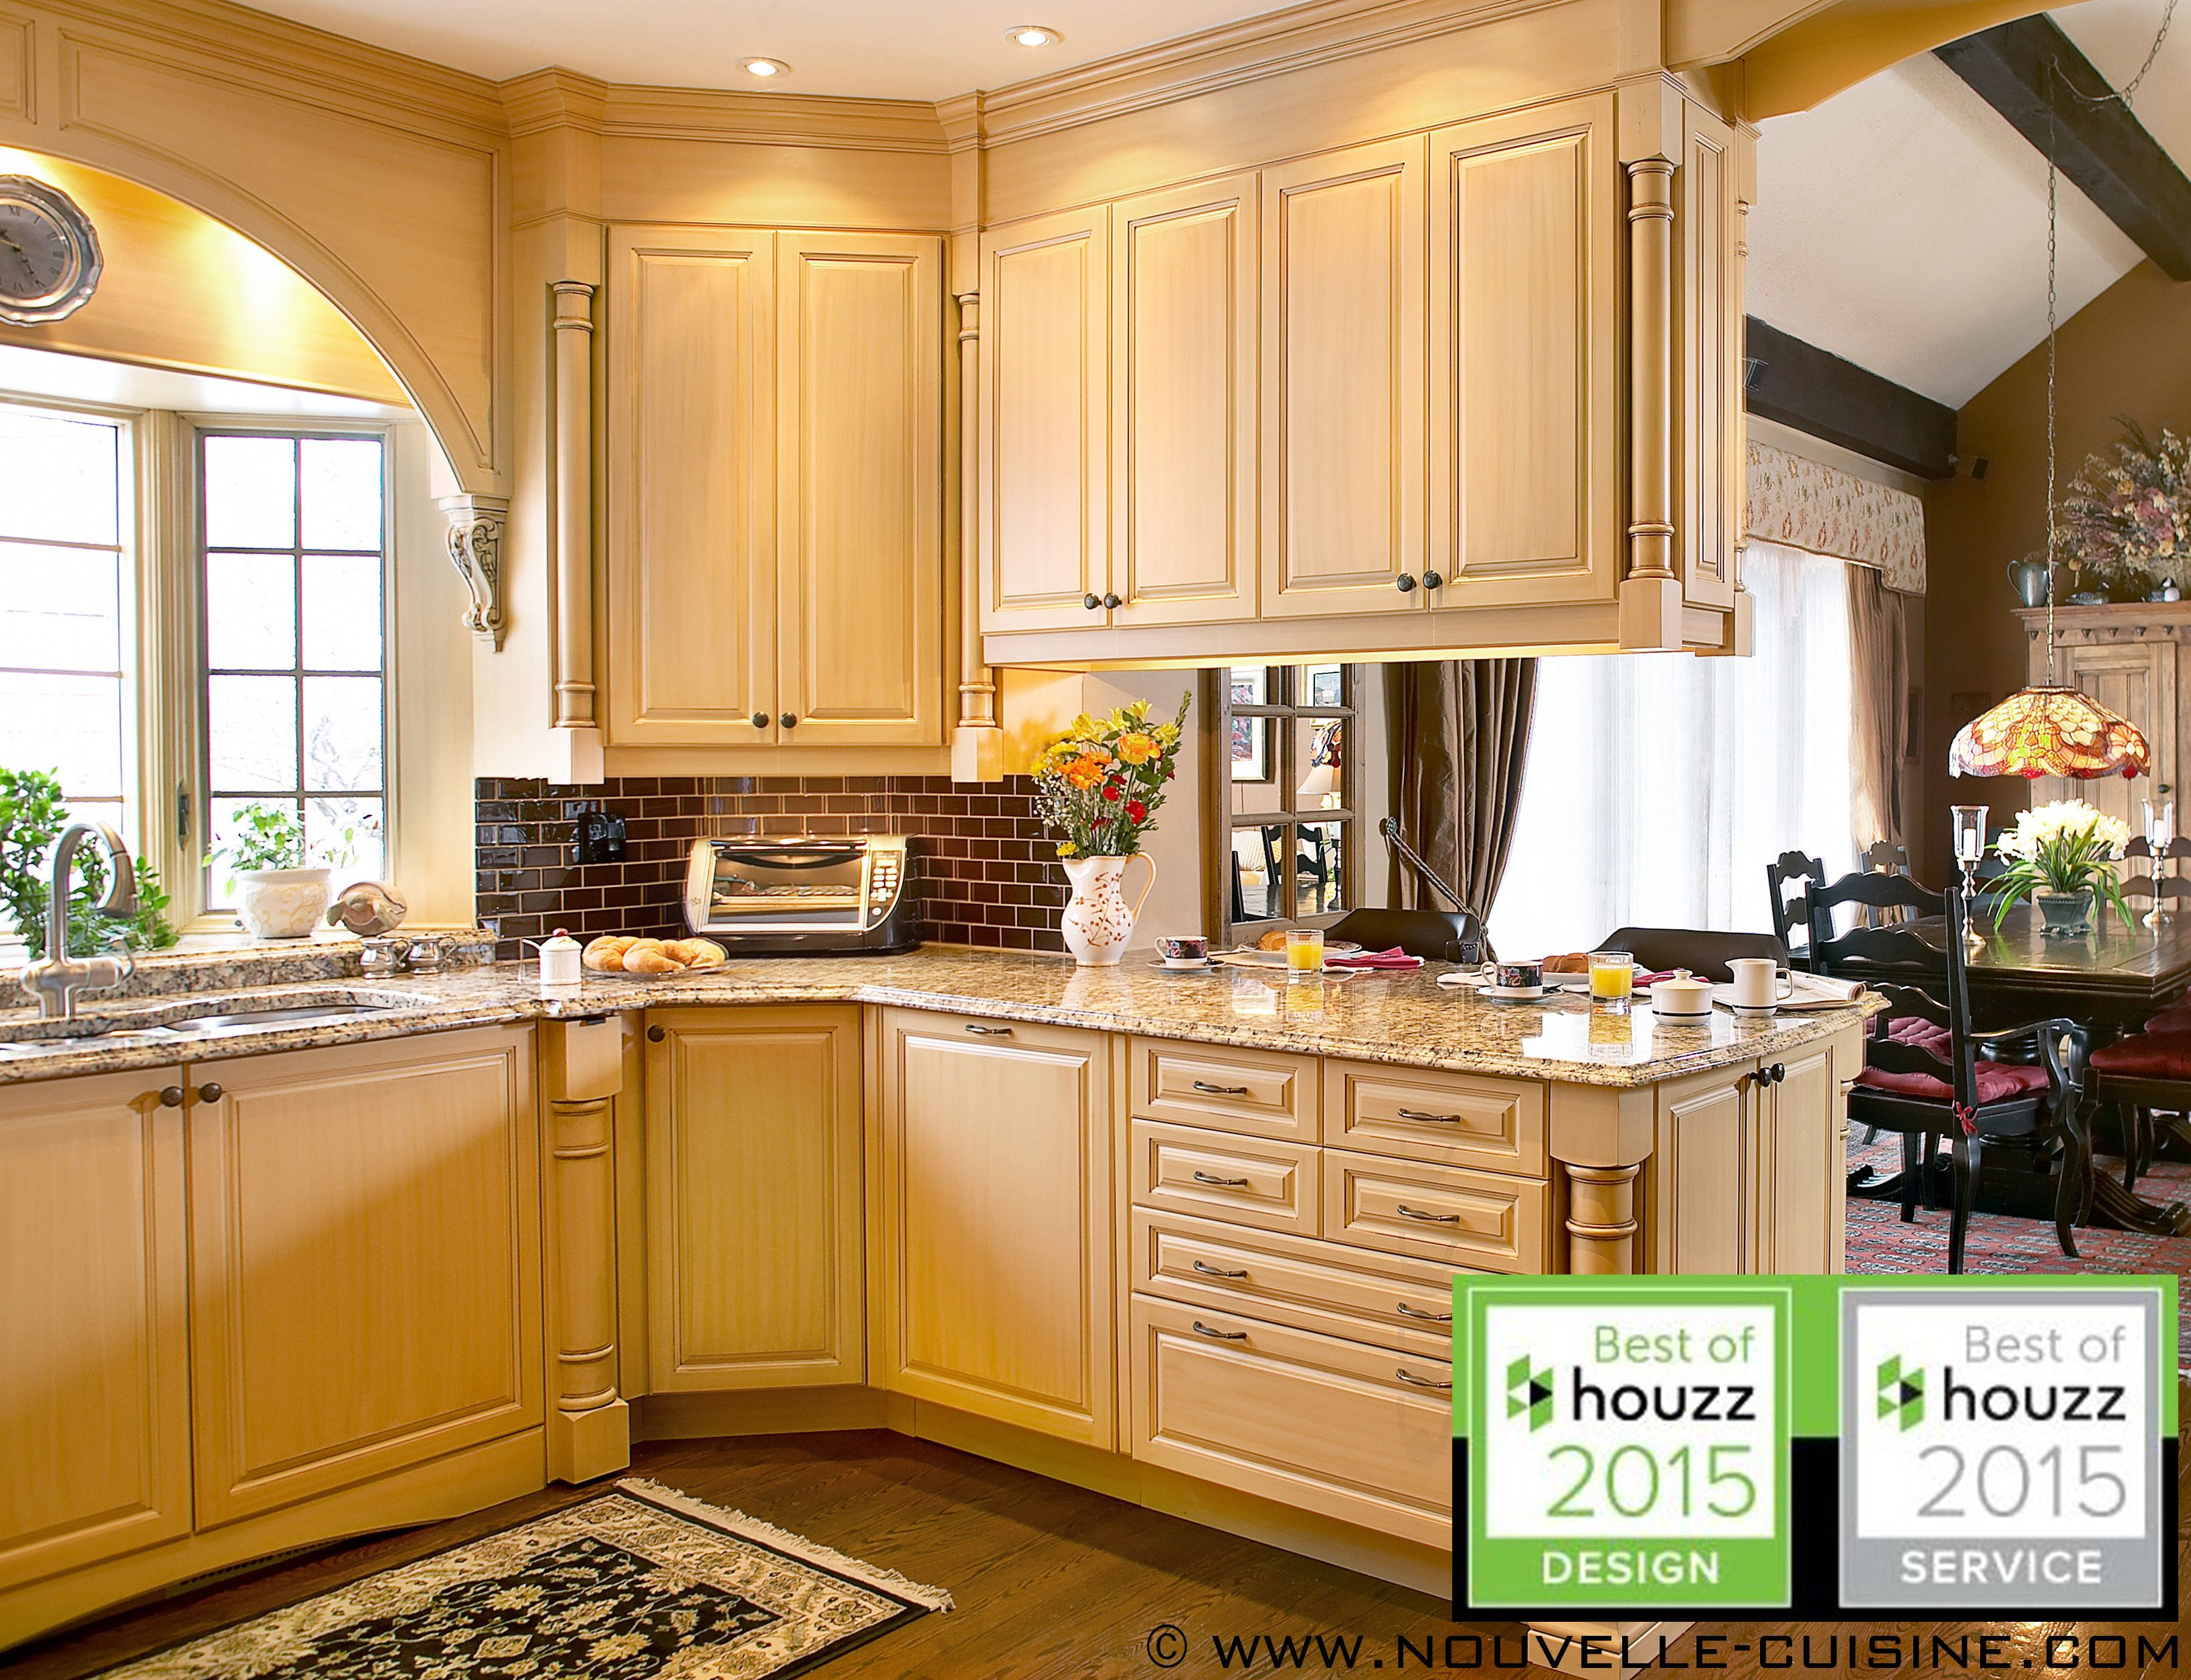 cuisine 2 solid wood kitchen cabinets Kitchen cabinets in solid wood and granit countertops Armoires de cuisine en bois massif